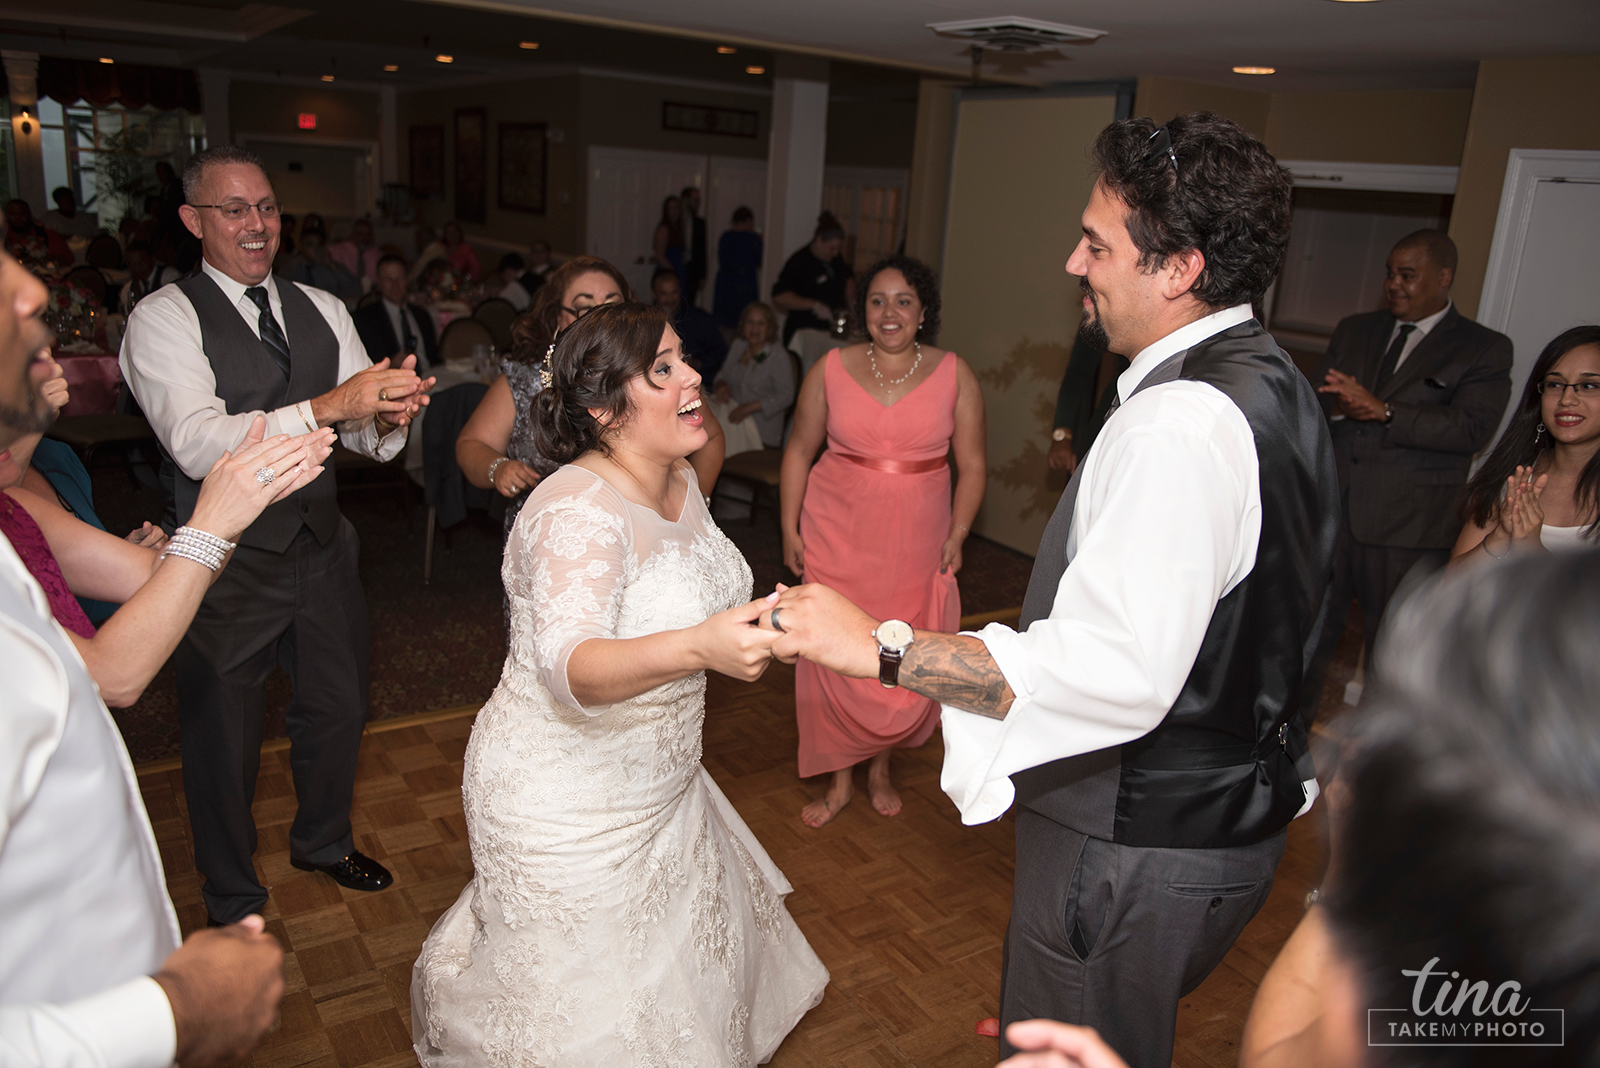 wedding-photographer-reception-guests-fun-dancing-summer-brandermill-country-club-virginia-2